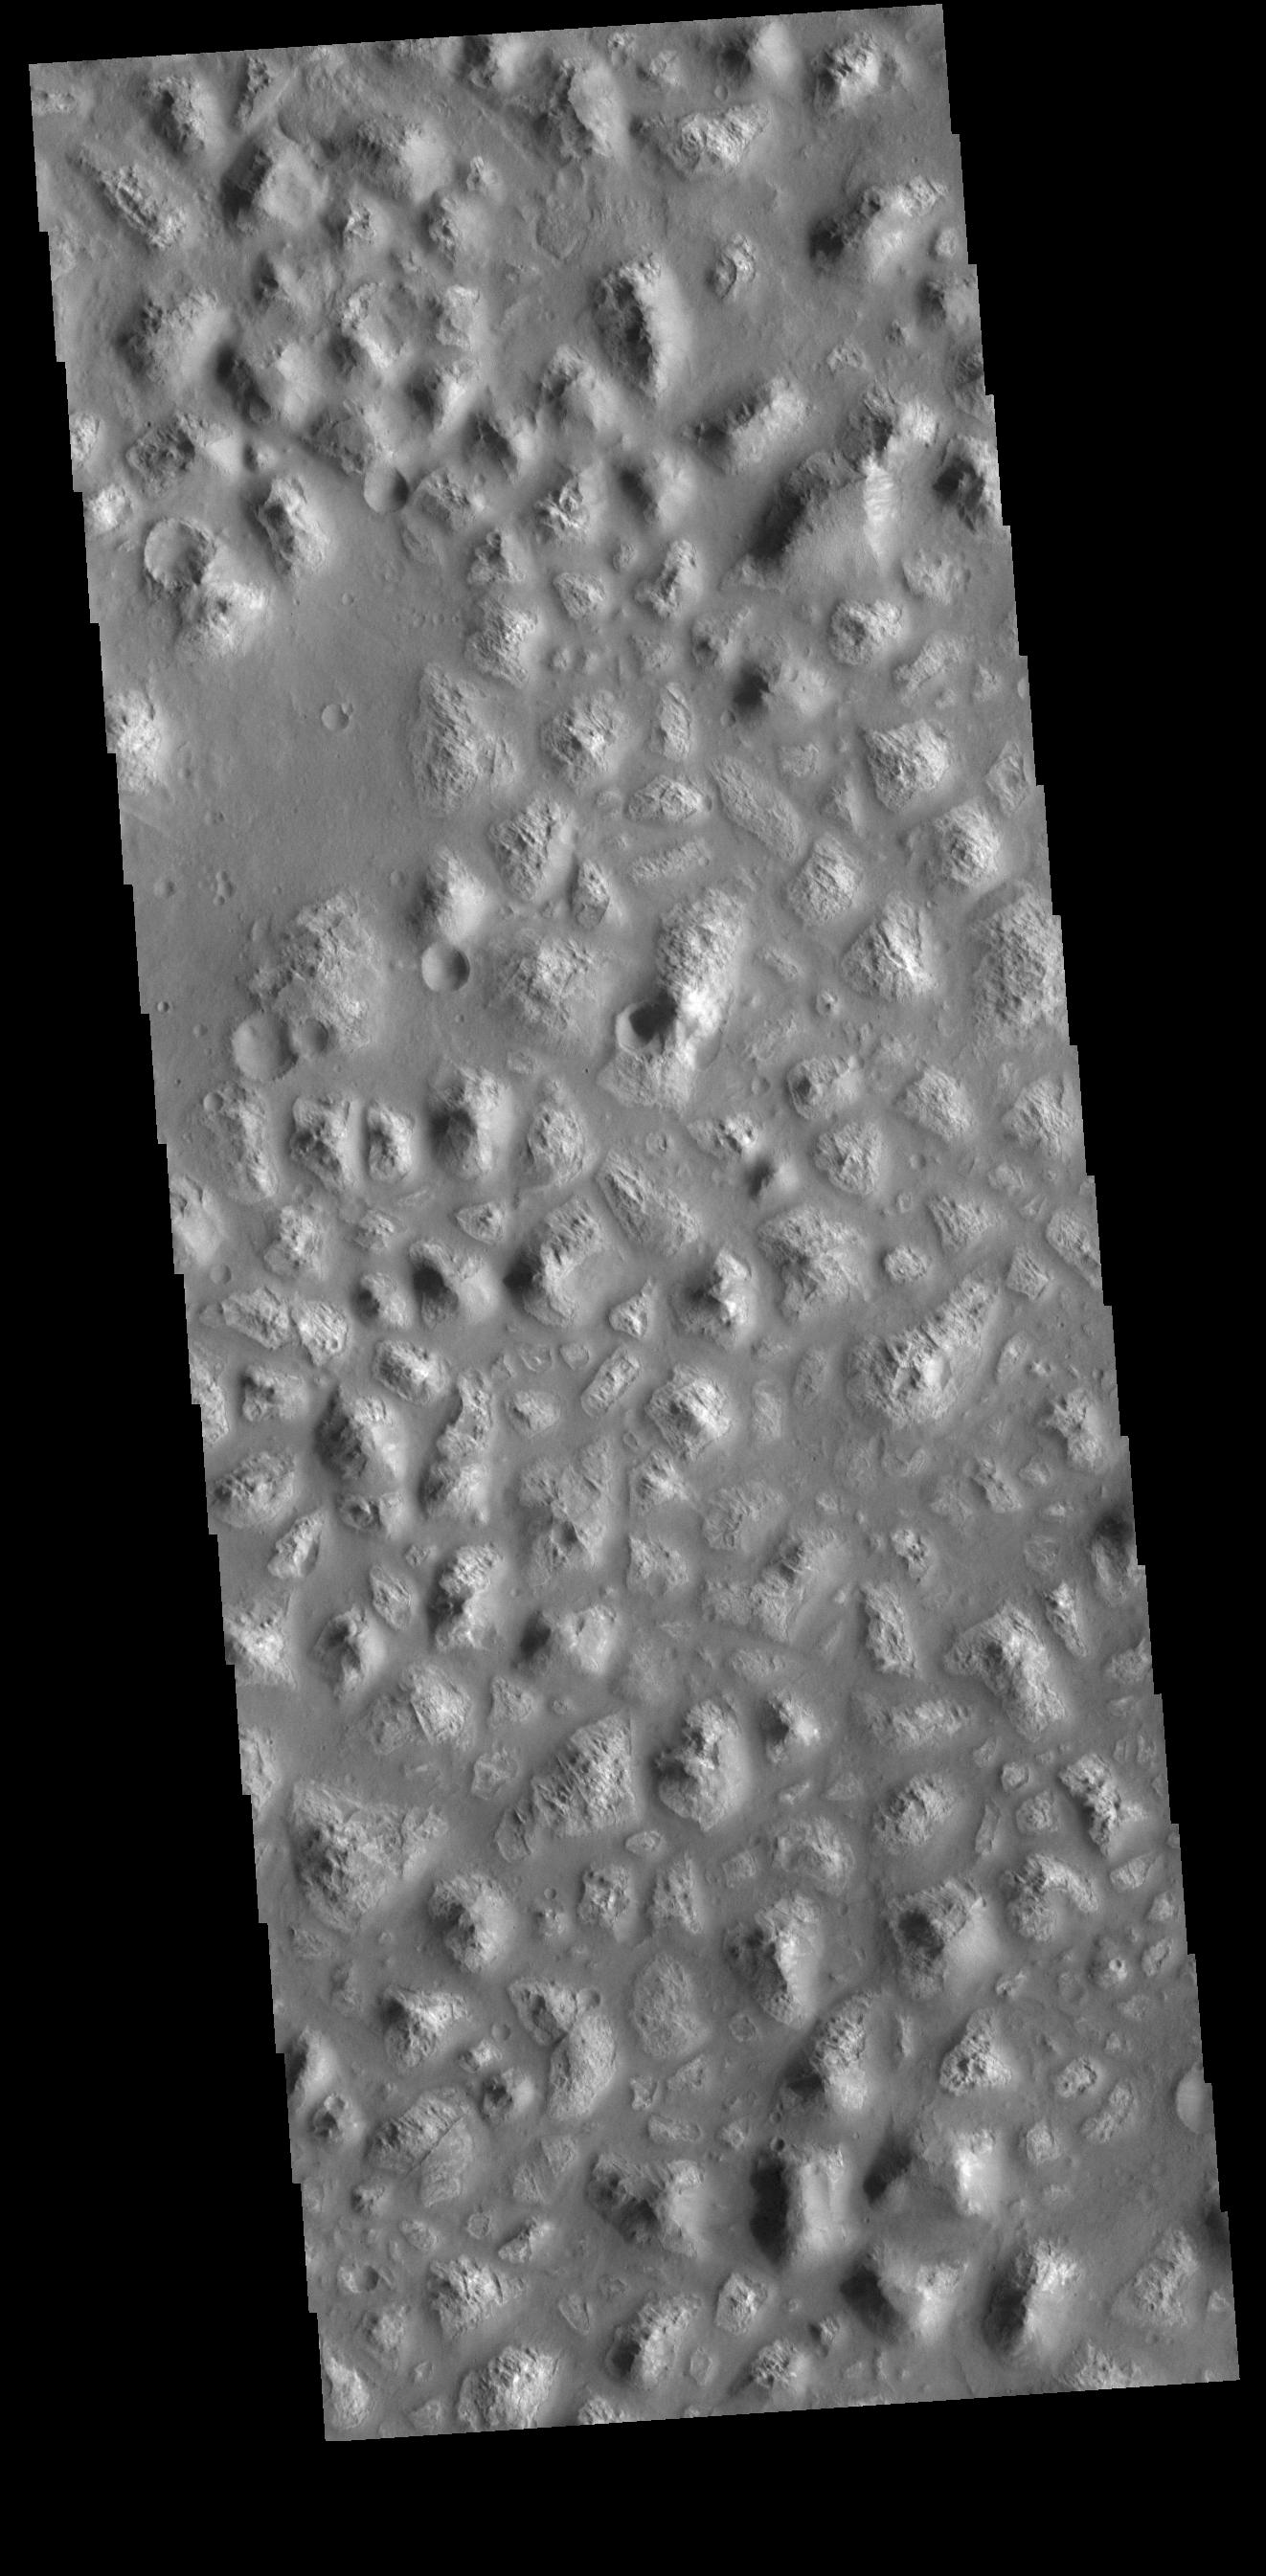 This image from NASAs Mars Odyssey shows part of Ariadnes Colles. The term colles means hills or knobs.